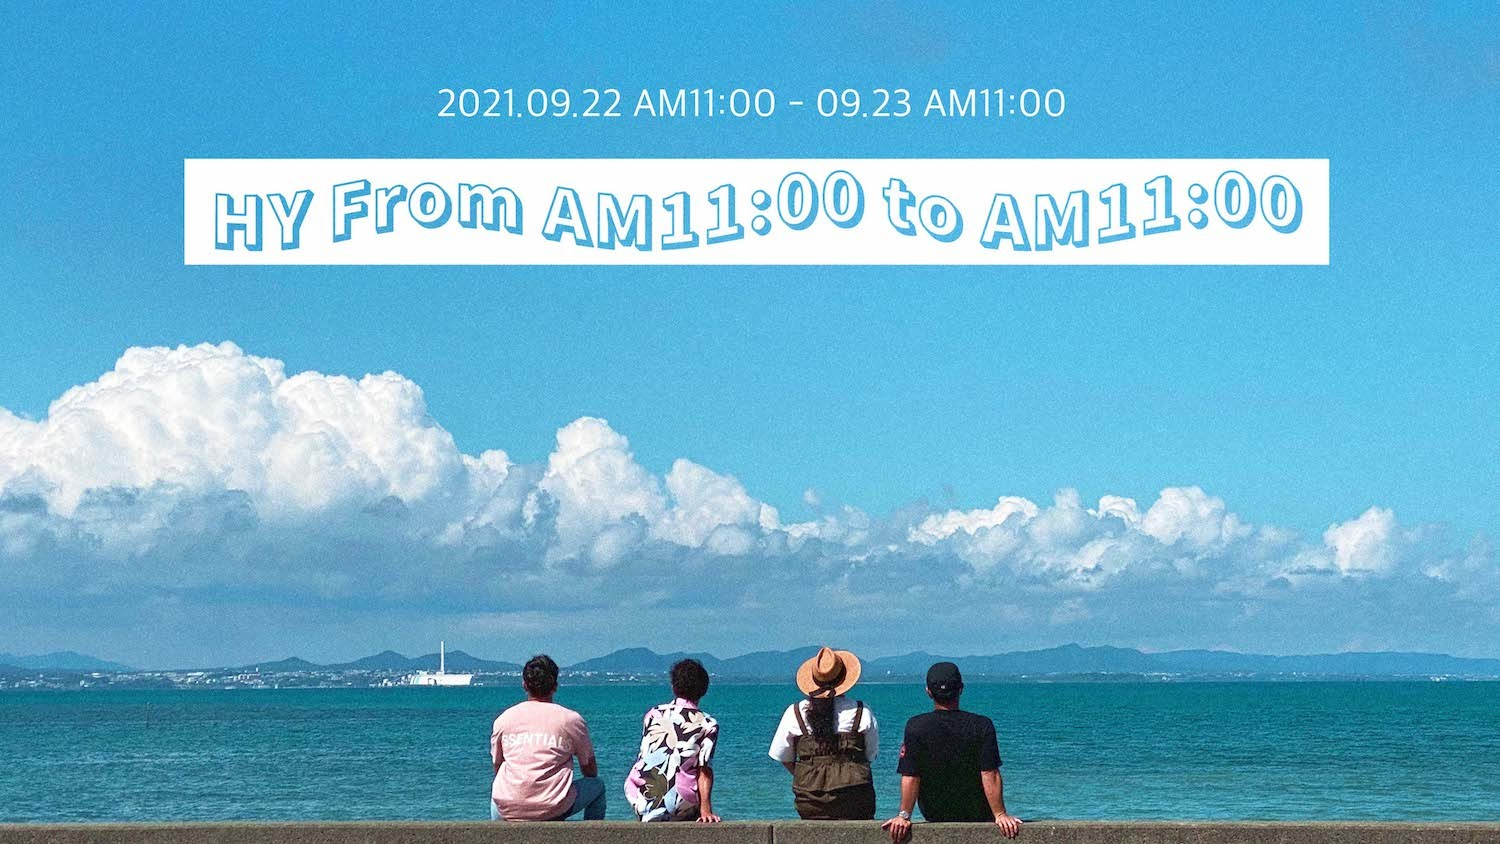 『HY From AM11:00 to AM11:00』